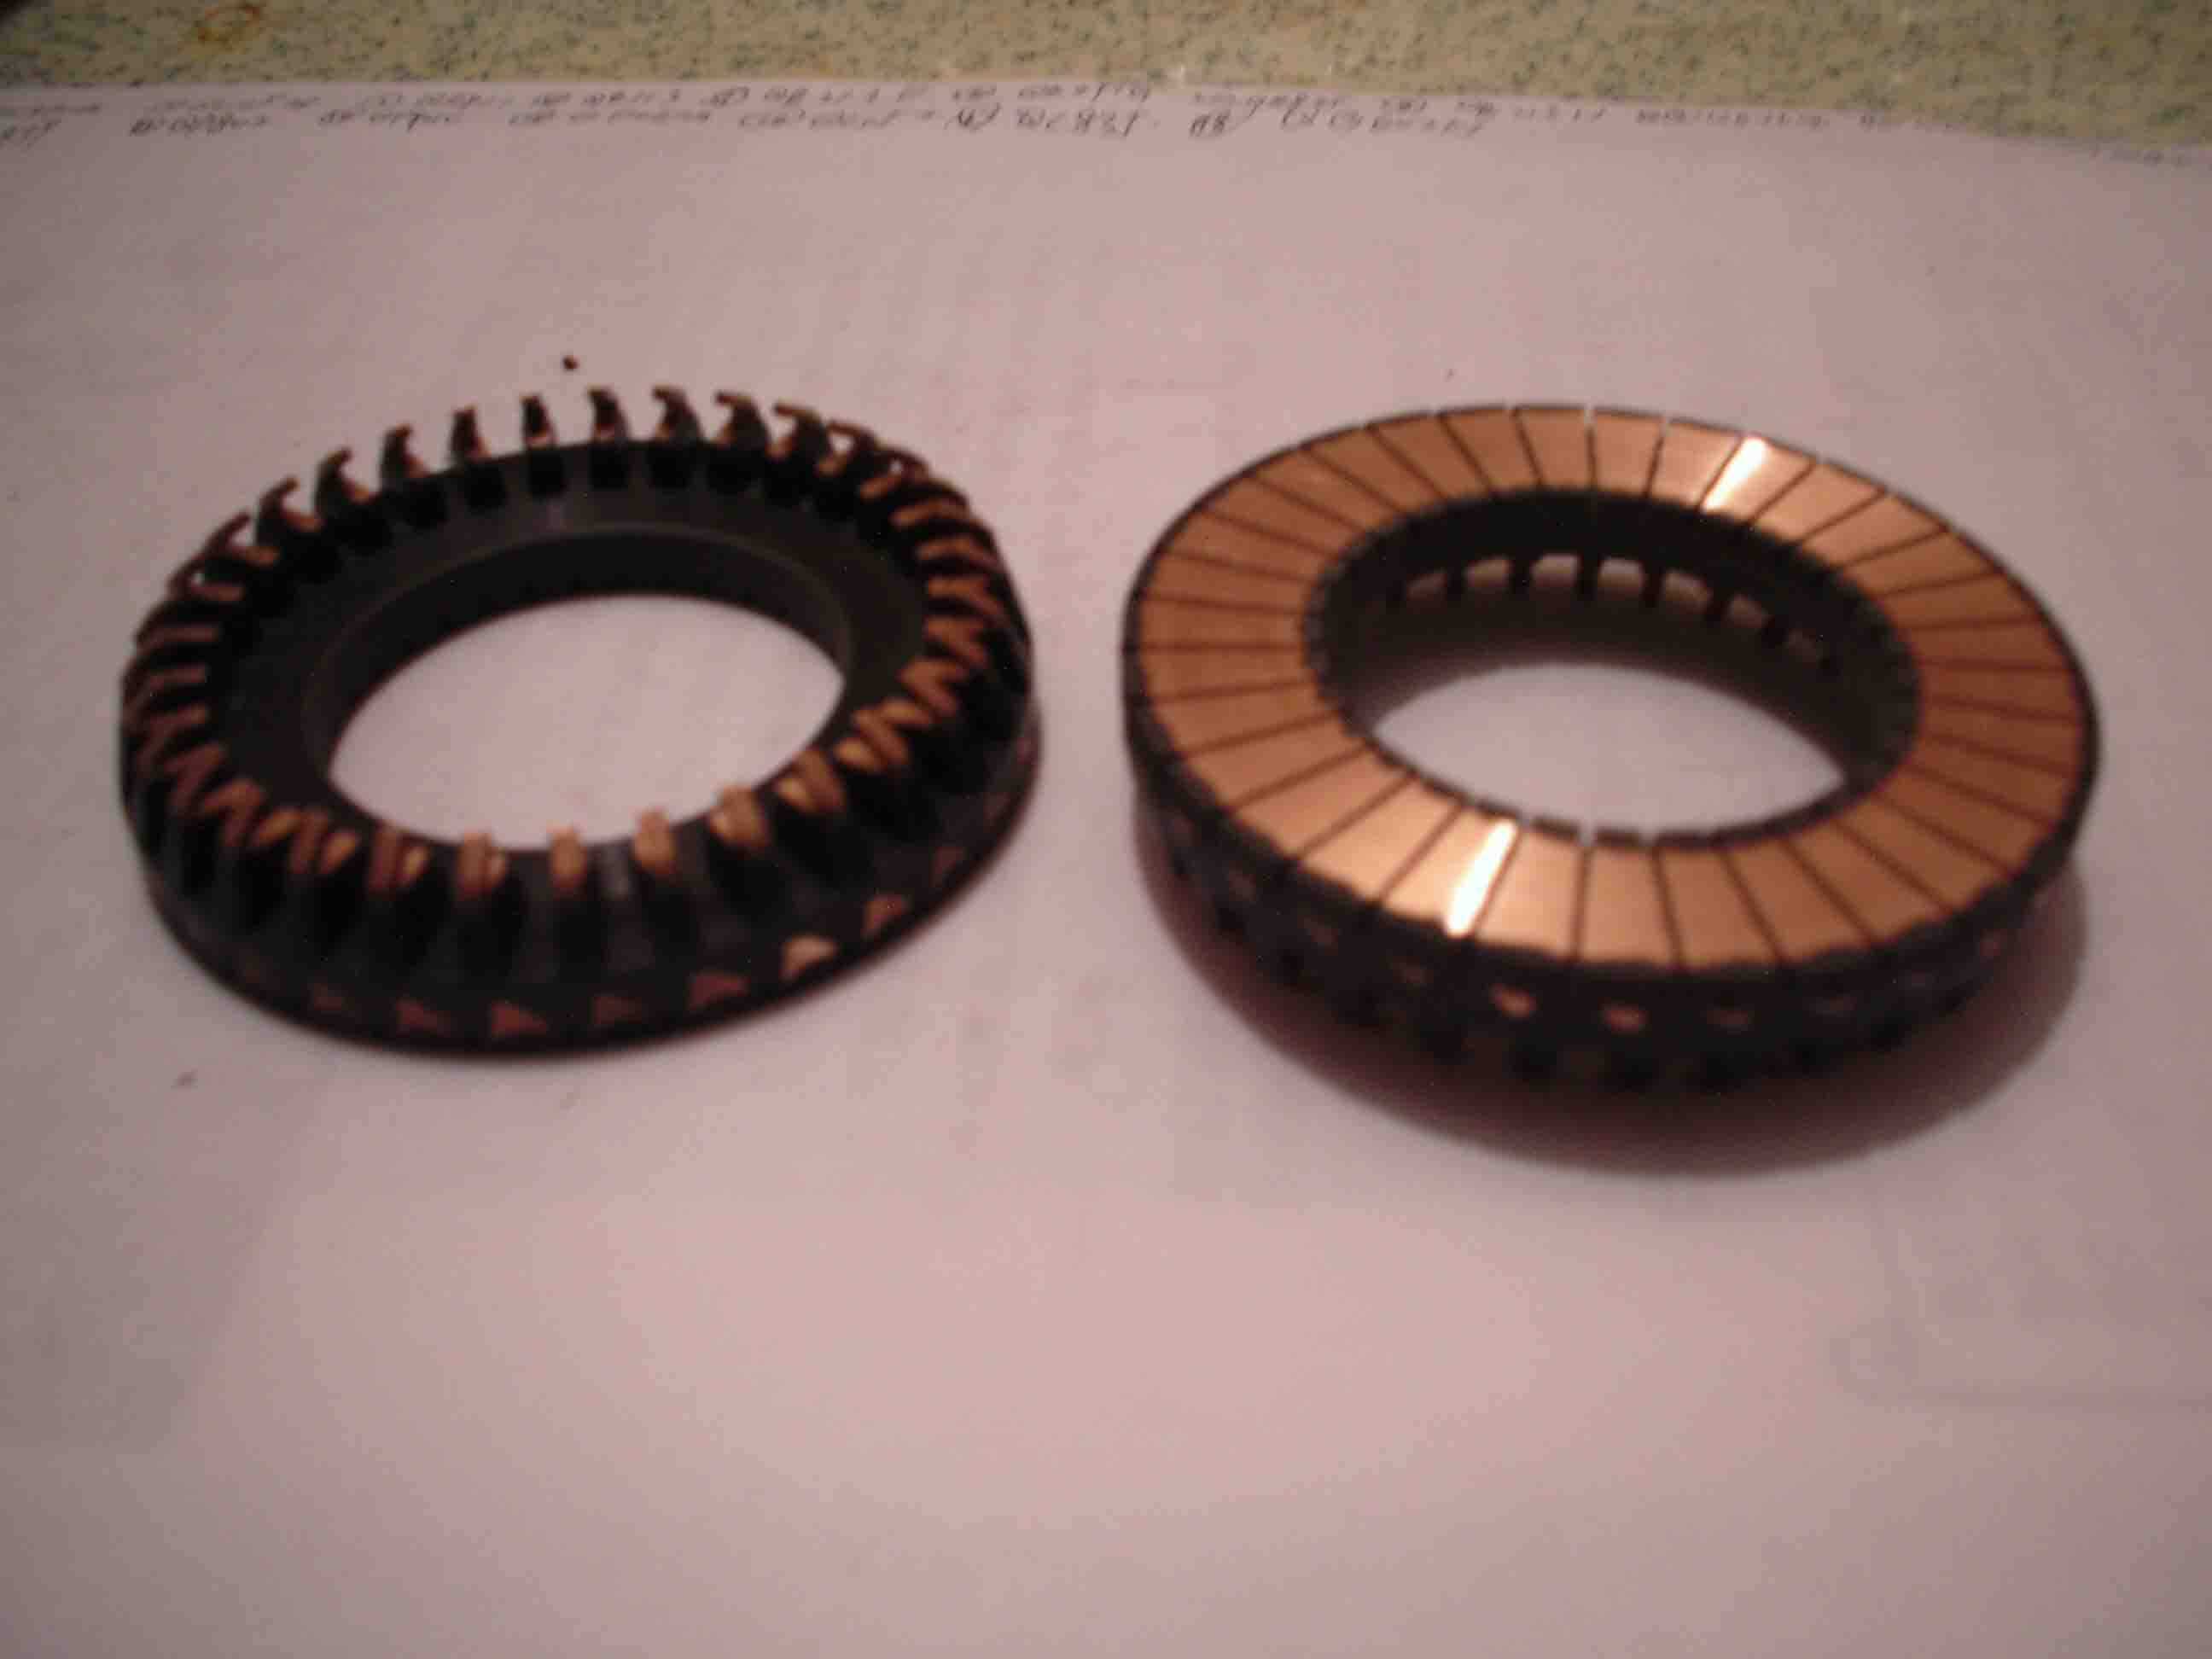 Planar commutator